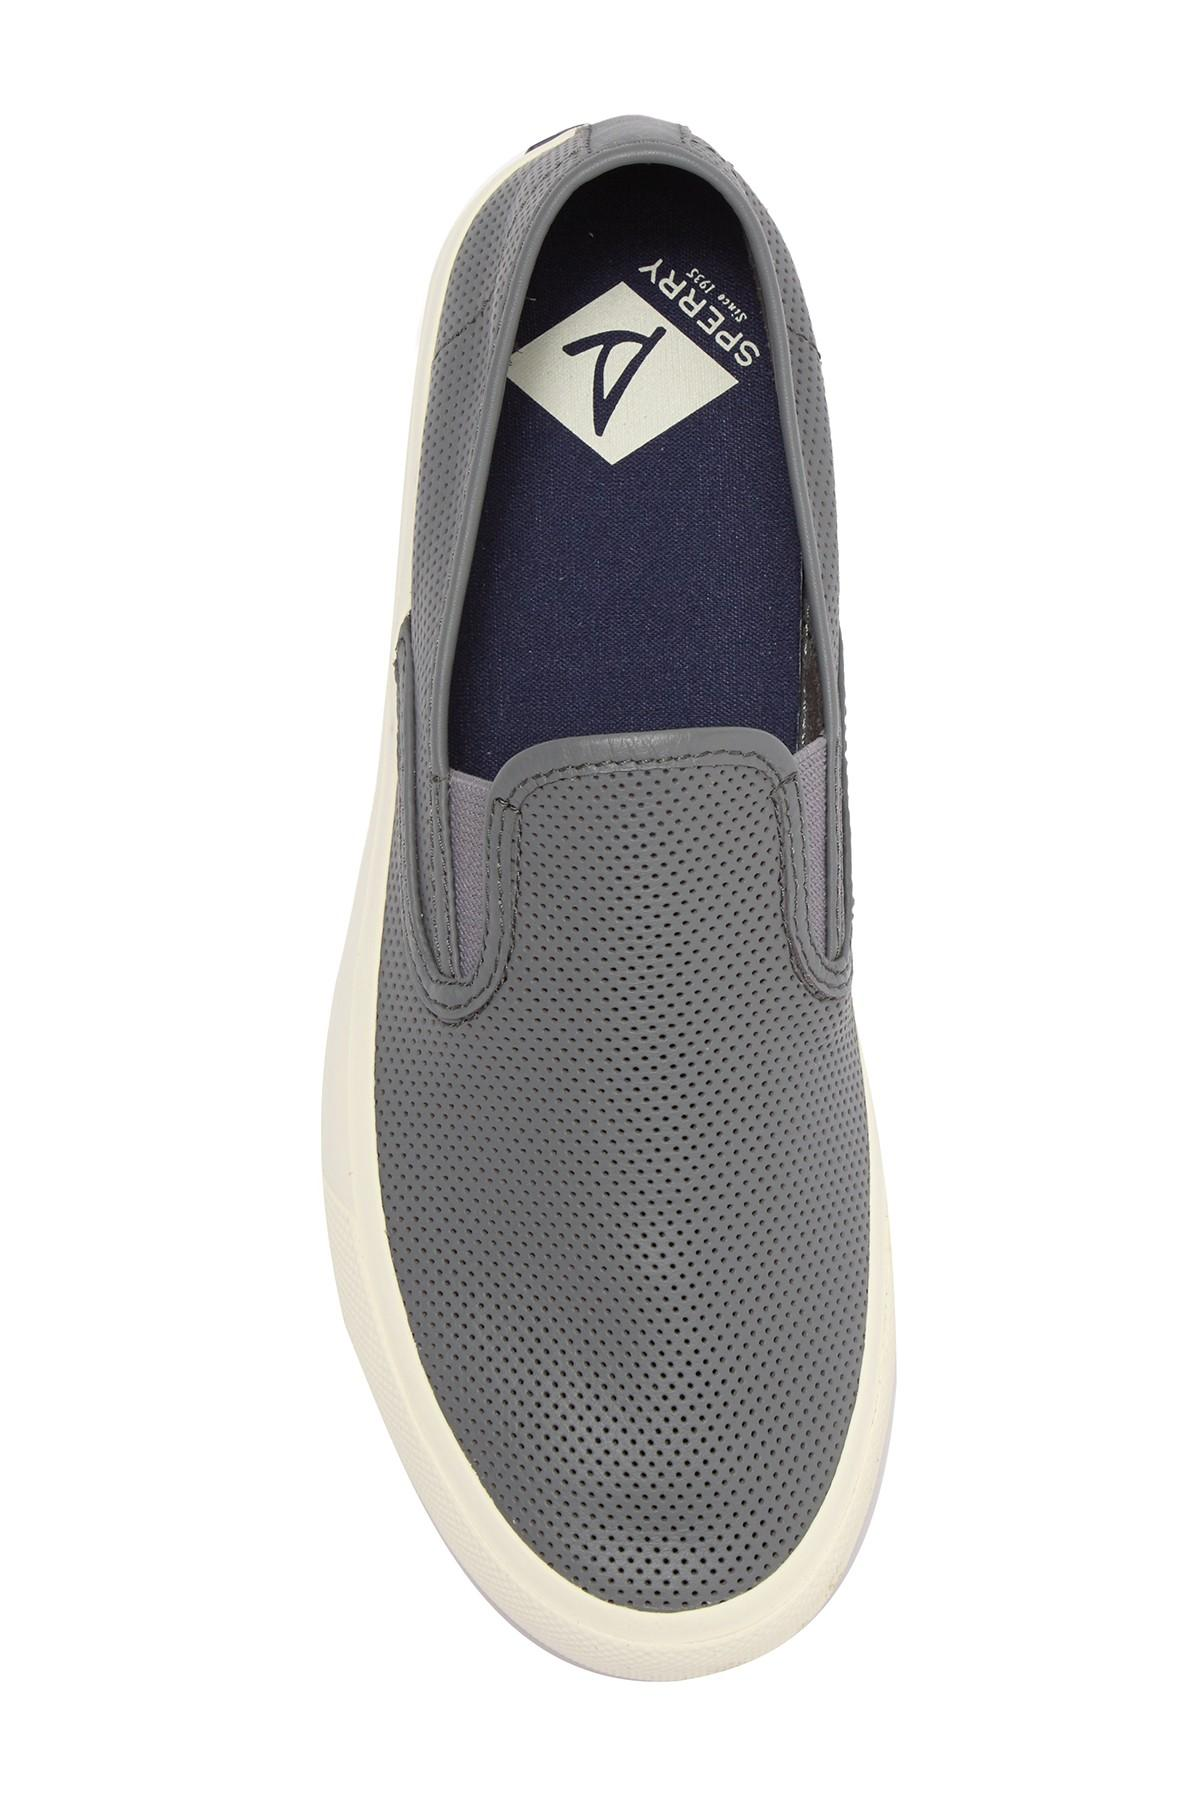 Sperry Top-Sider Leather Captain's